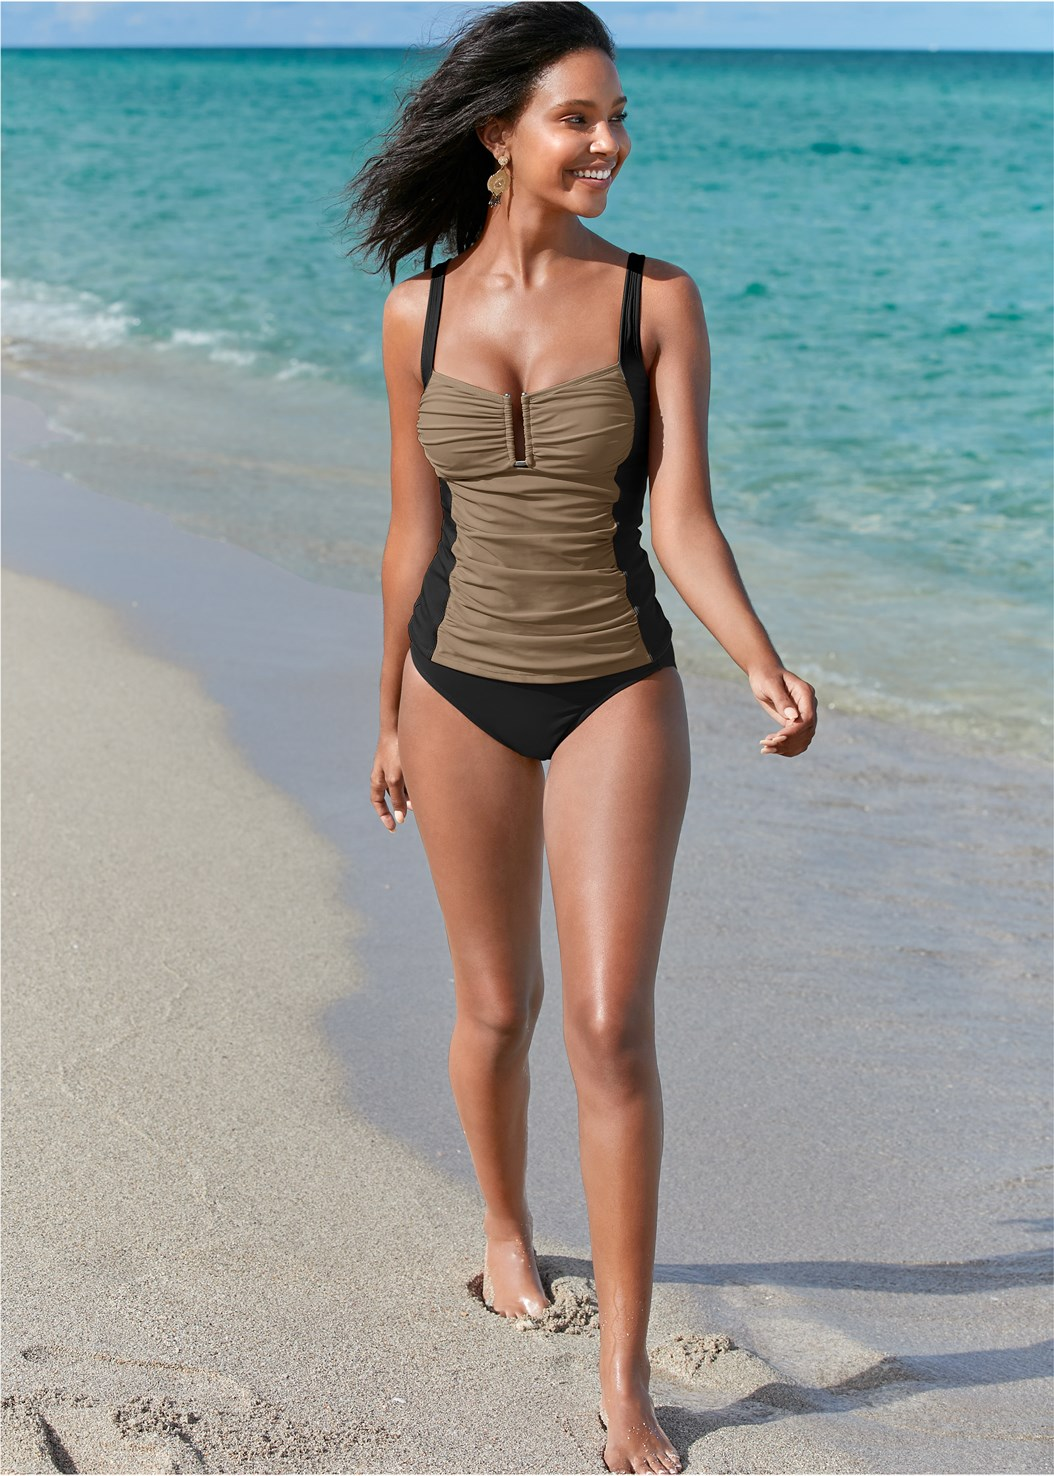 Slenderizing Tankini Top,Mid Rise Hipster Classic Bikini Bottom,Full Coverage Mid Rise Hipster Bikini Bottom,Swim Short,Mesh Trimmed Cover-Up Dress,Circular Straw Bag